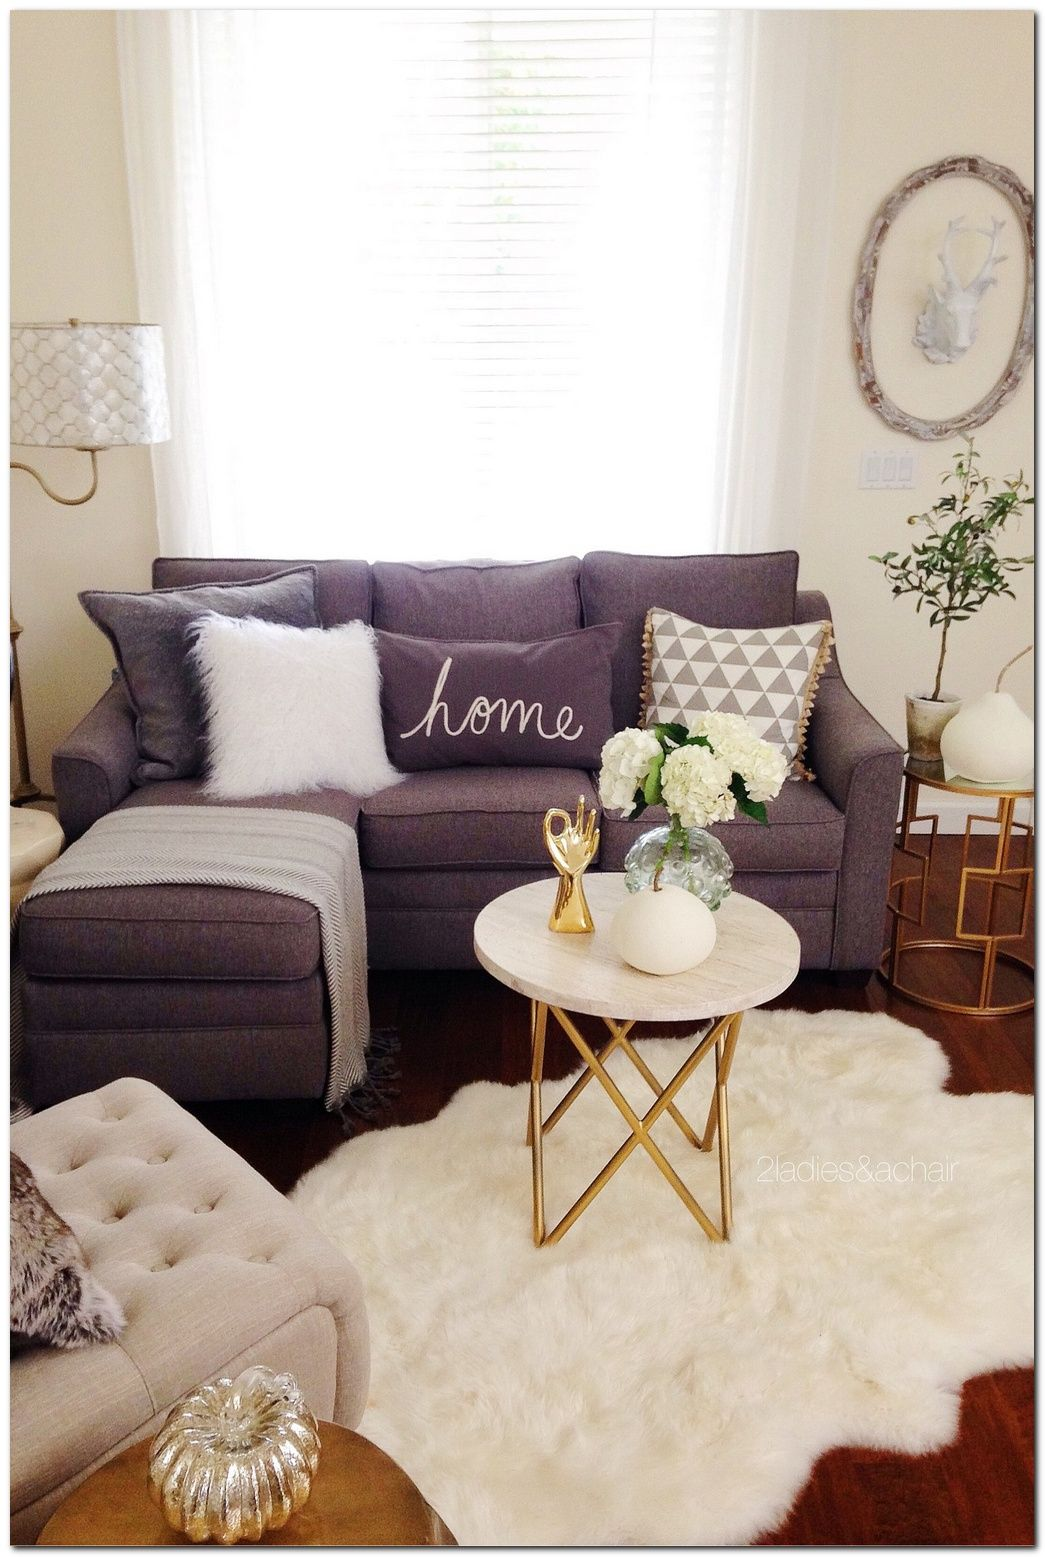 50 Ideas To Decorate Small Apartment On A Budget Diy